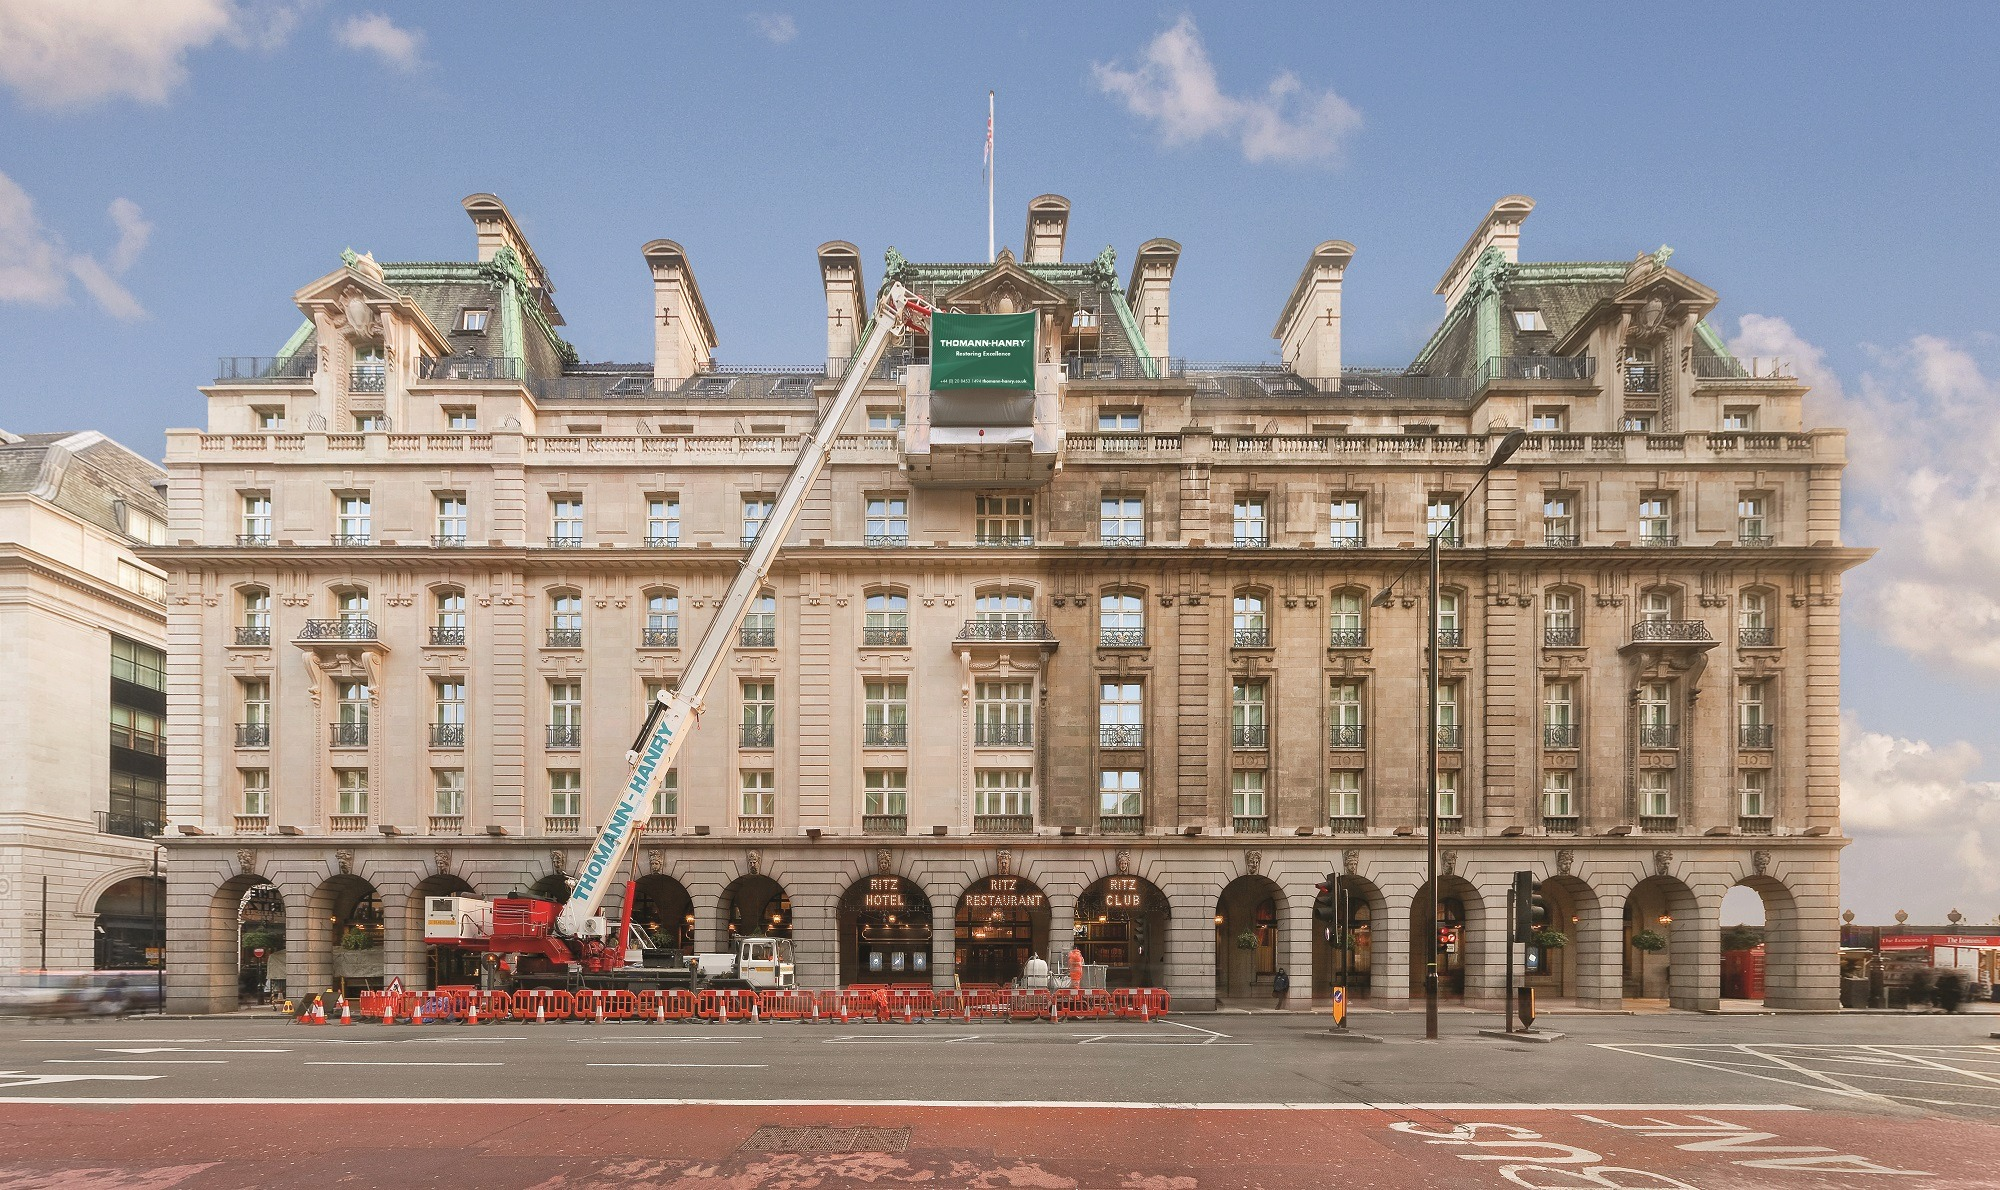 facade cleaning The Ritz Hotel Piccadilly, London